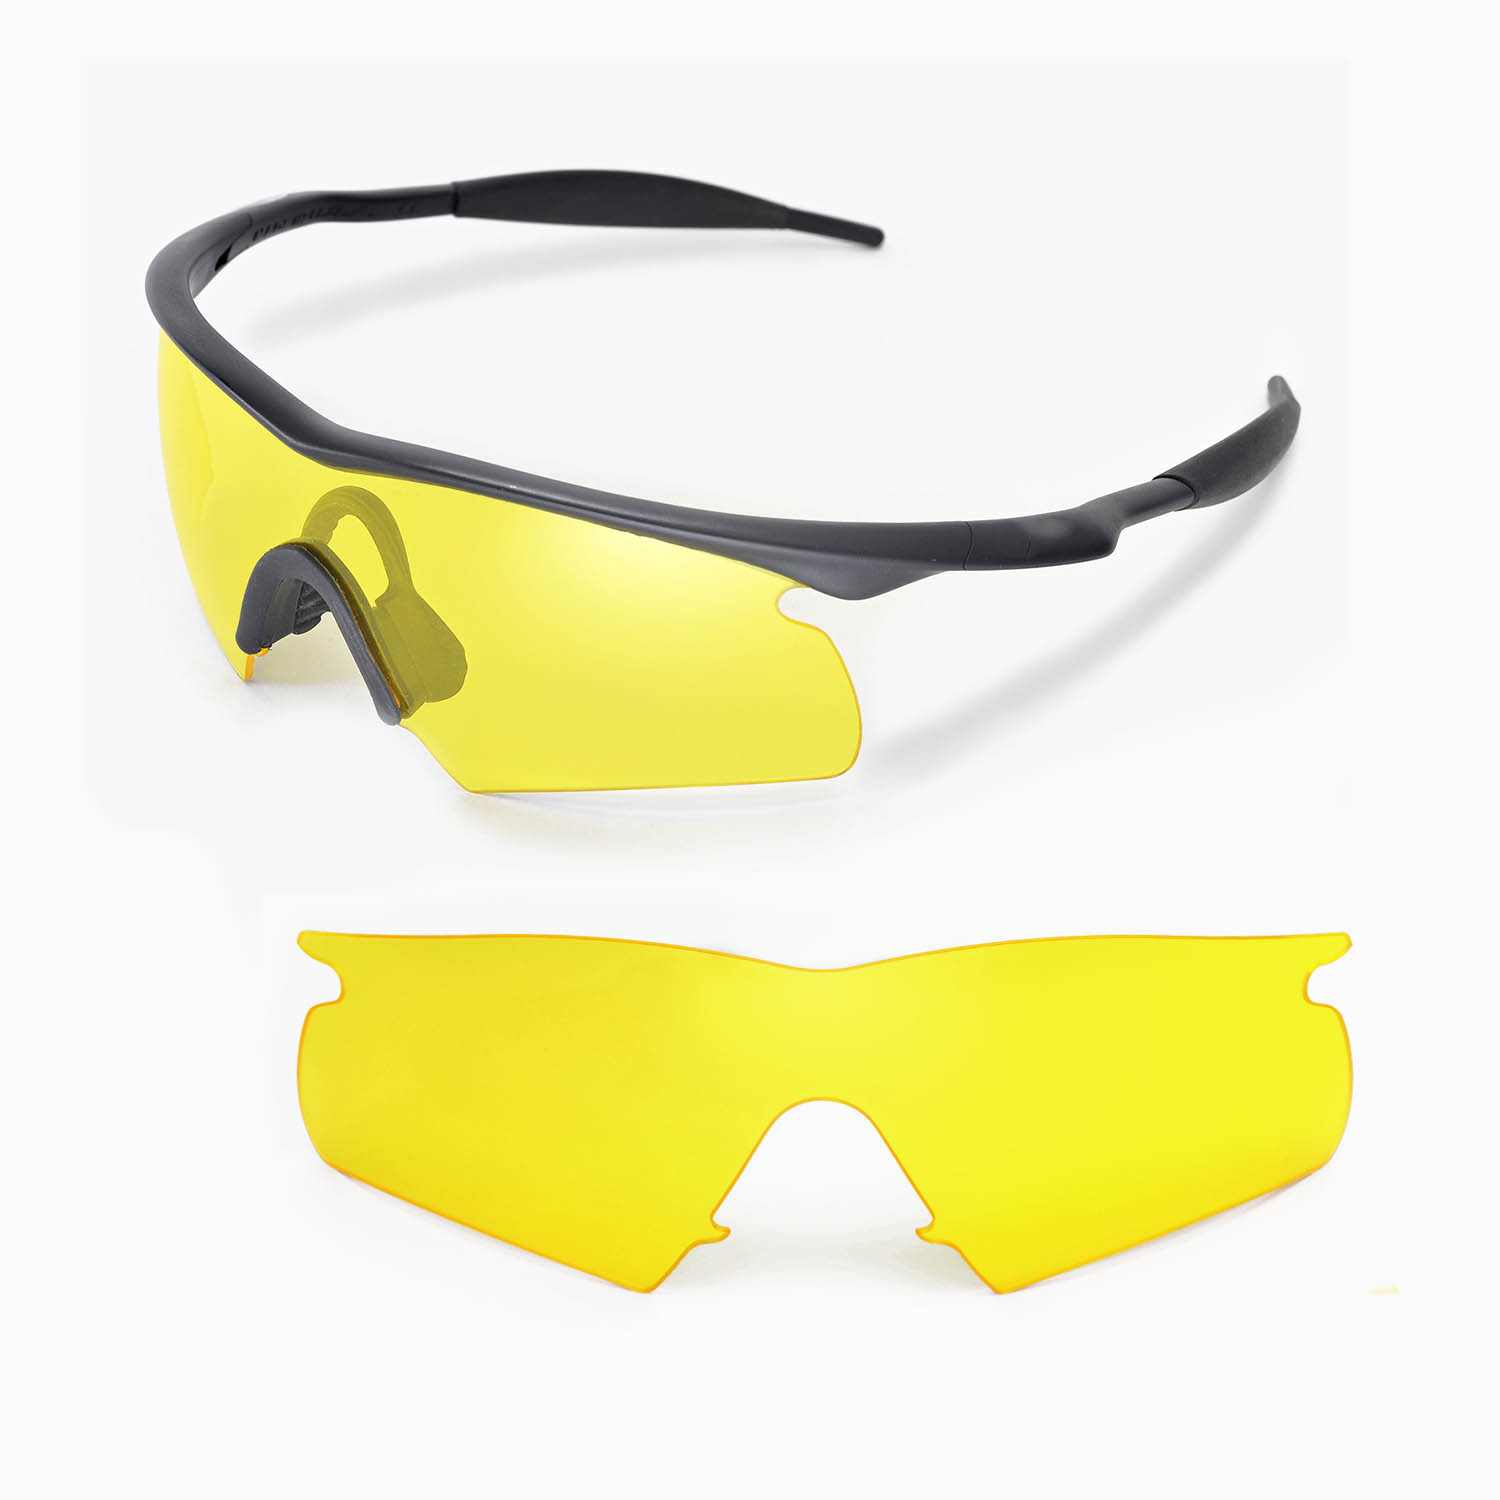 New Walleva Yellow Replacement Lenses For Oakley New M Frame Hybrid ...